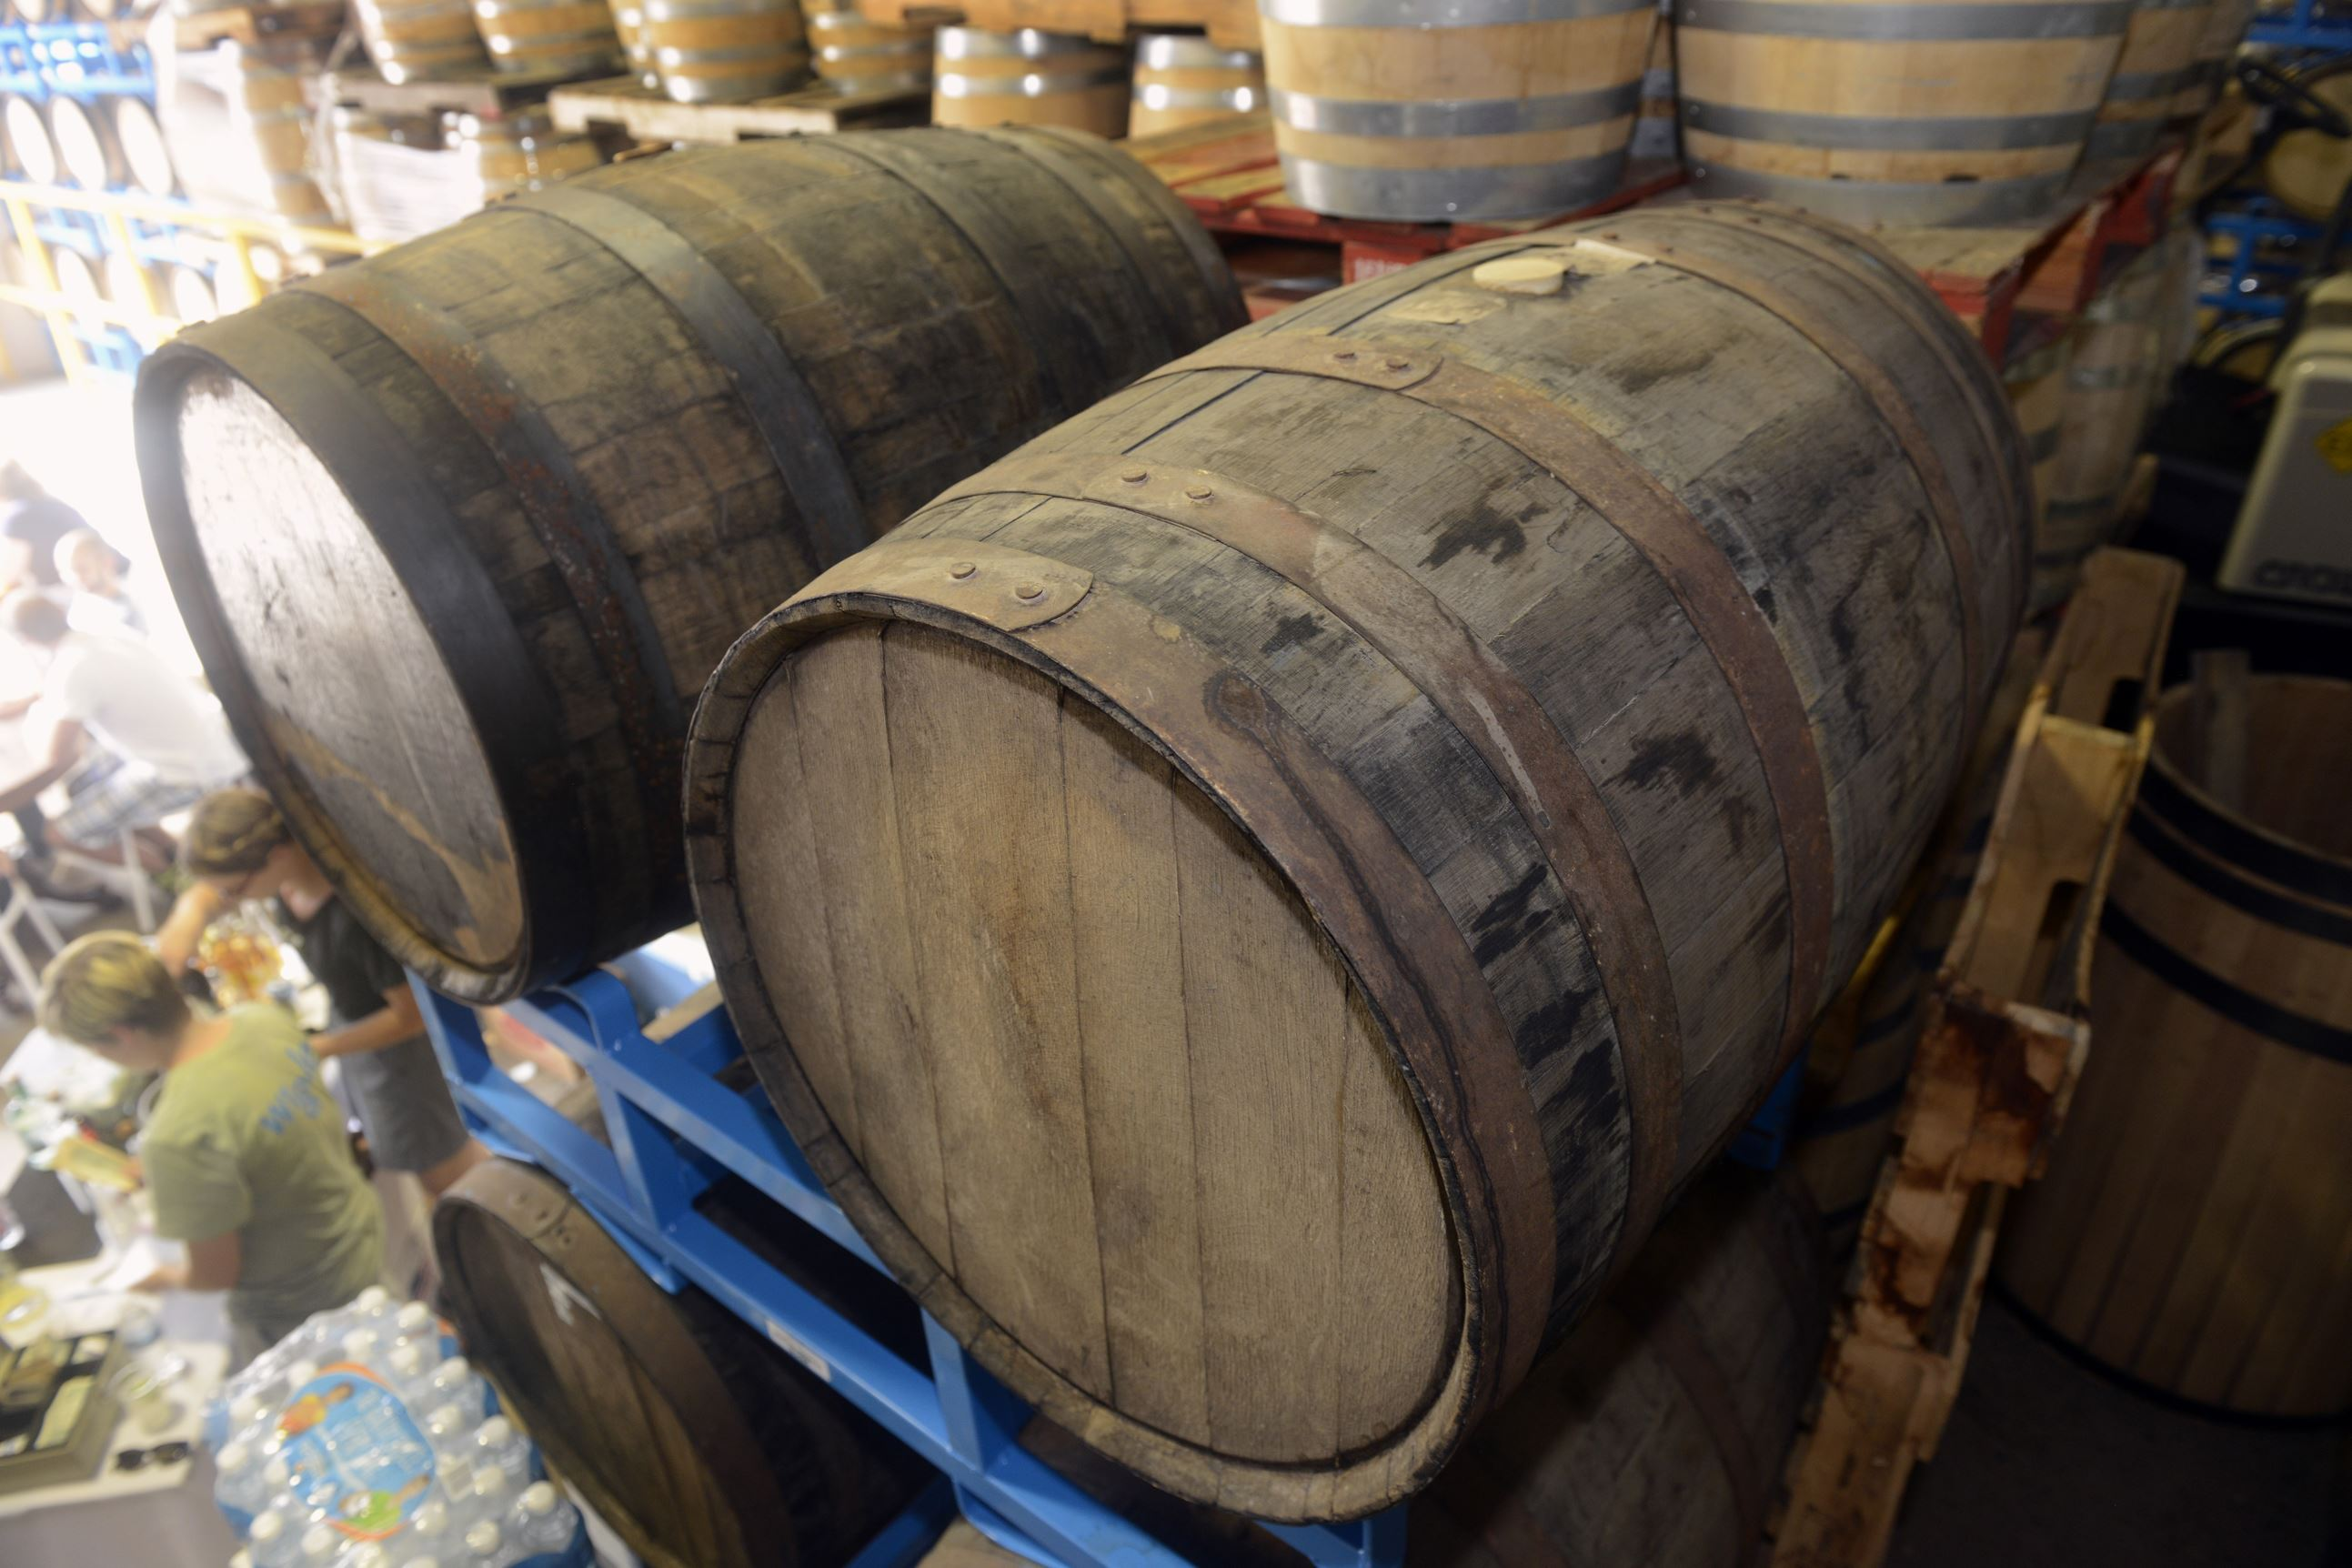 20150711bwGineverMag02x Assorted spirits age at Wigle Whiskey Barrelhouse on the North Side.